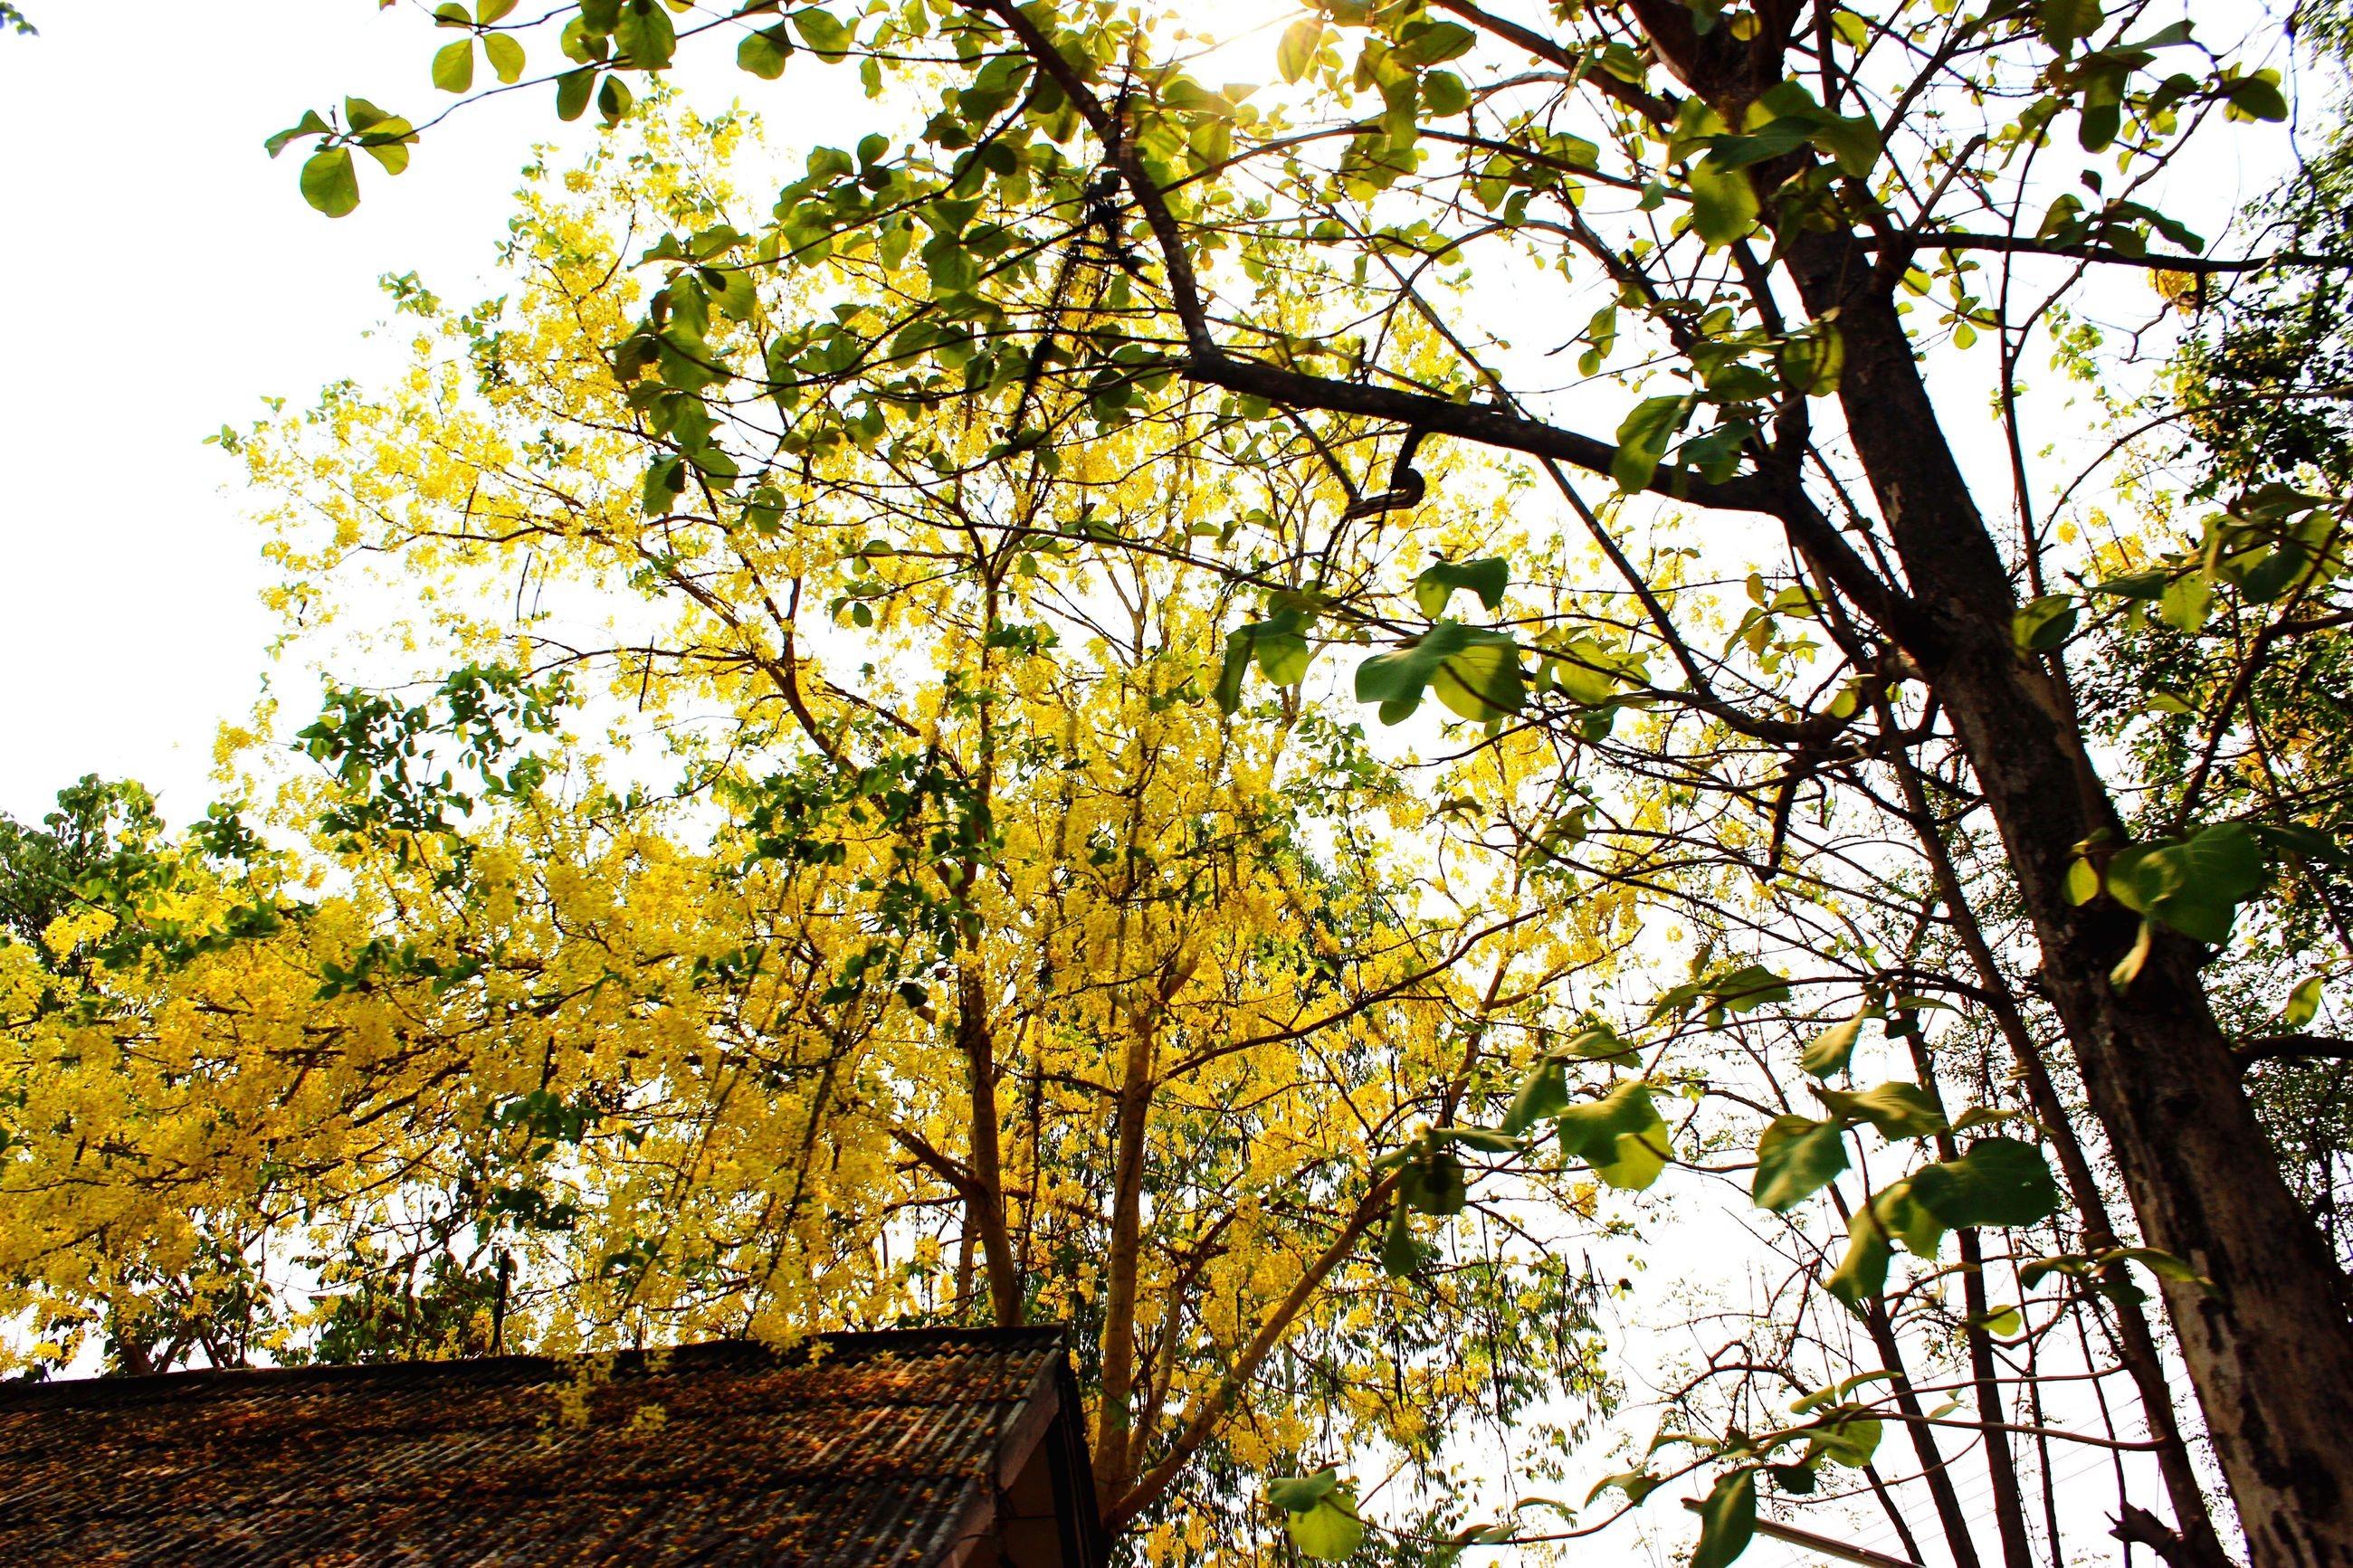 tree, low angle view, branch, architecture, built structure, building exterior, growth, clear sky, yellow, sky, nature, leaf, day, autumn, outdoors, no people, house, beauty in nature, tree trunk, green color